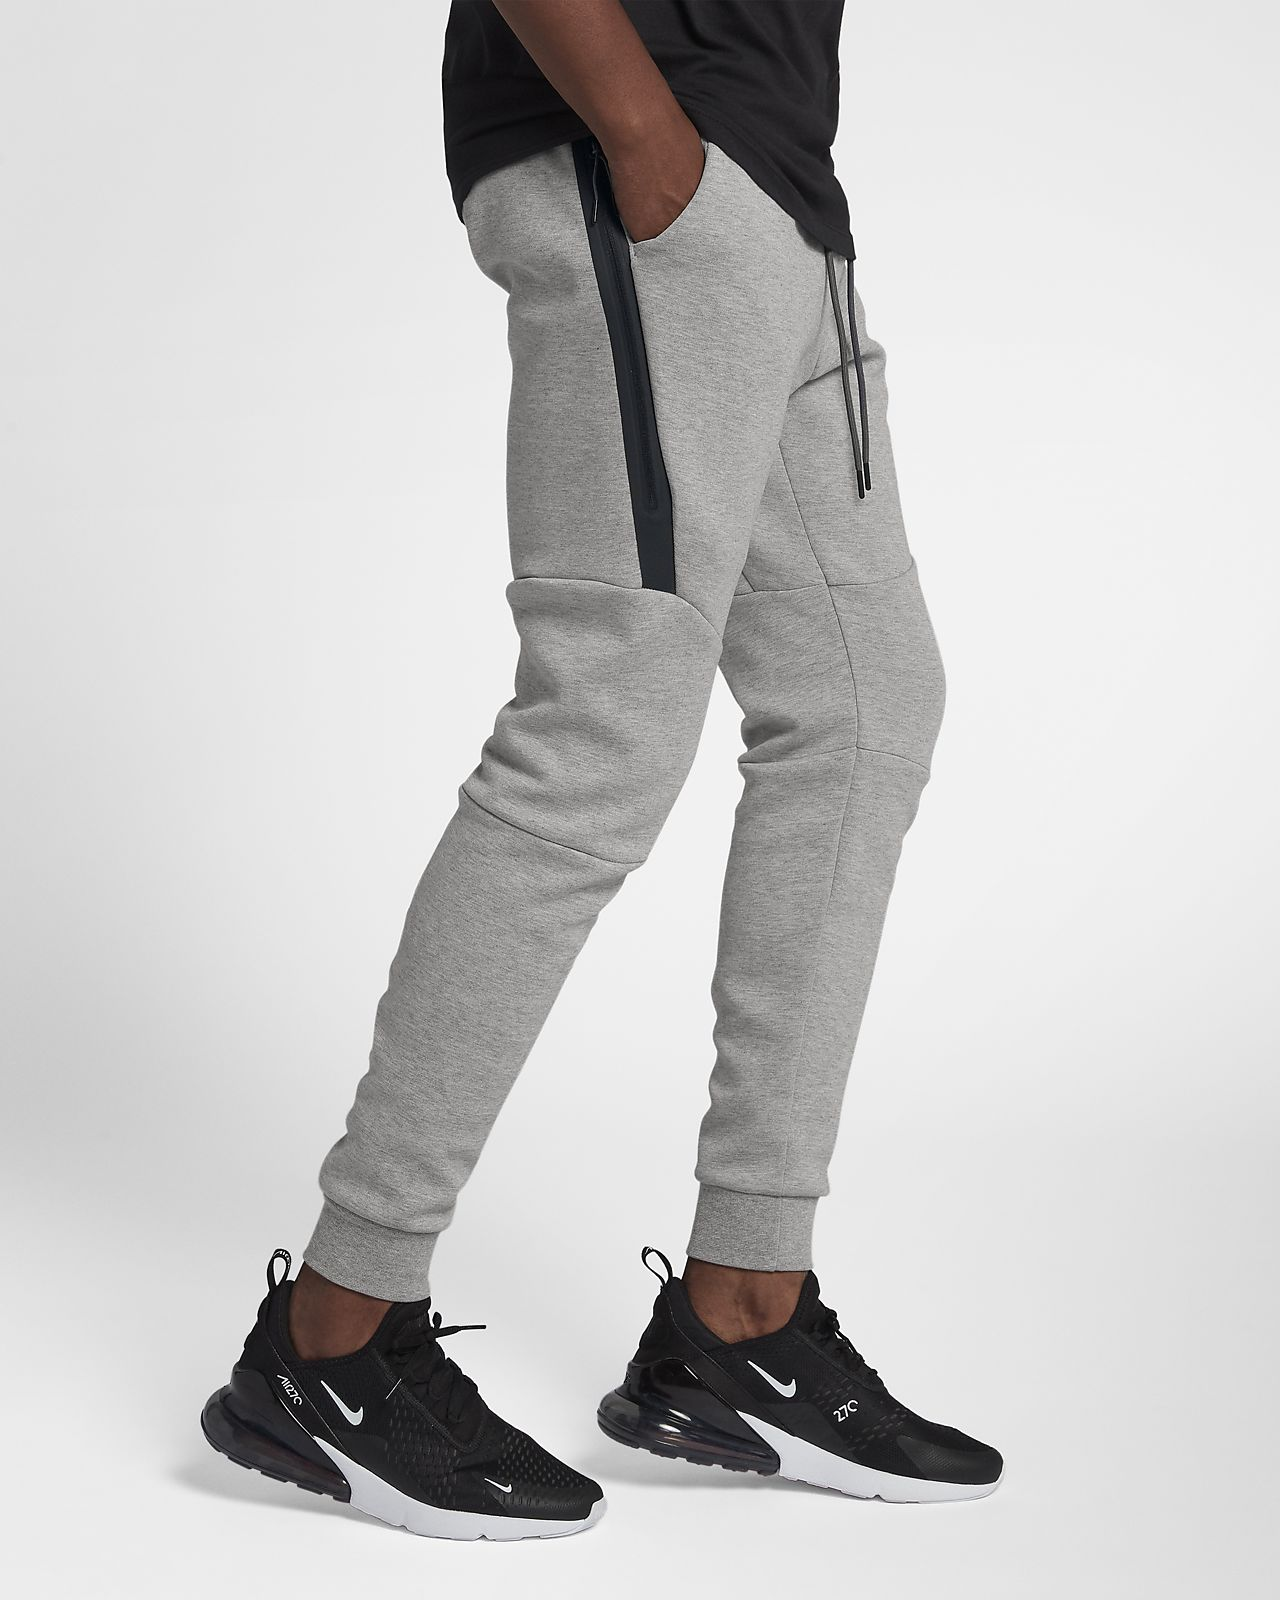 1a44fde6 Nike Sportswear Tech Fleece Men's Joggers. Nike.com